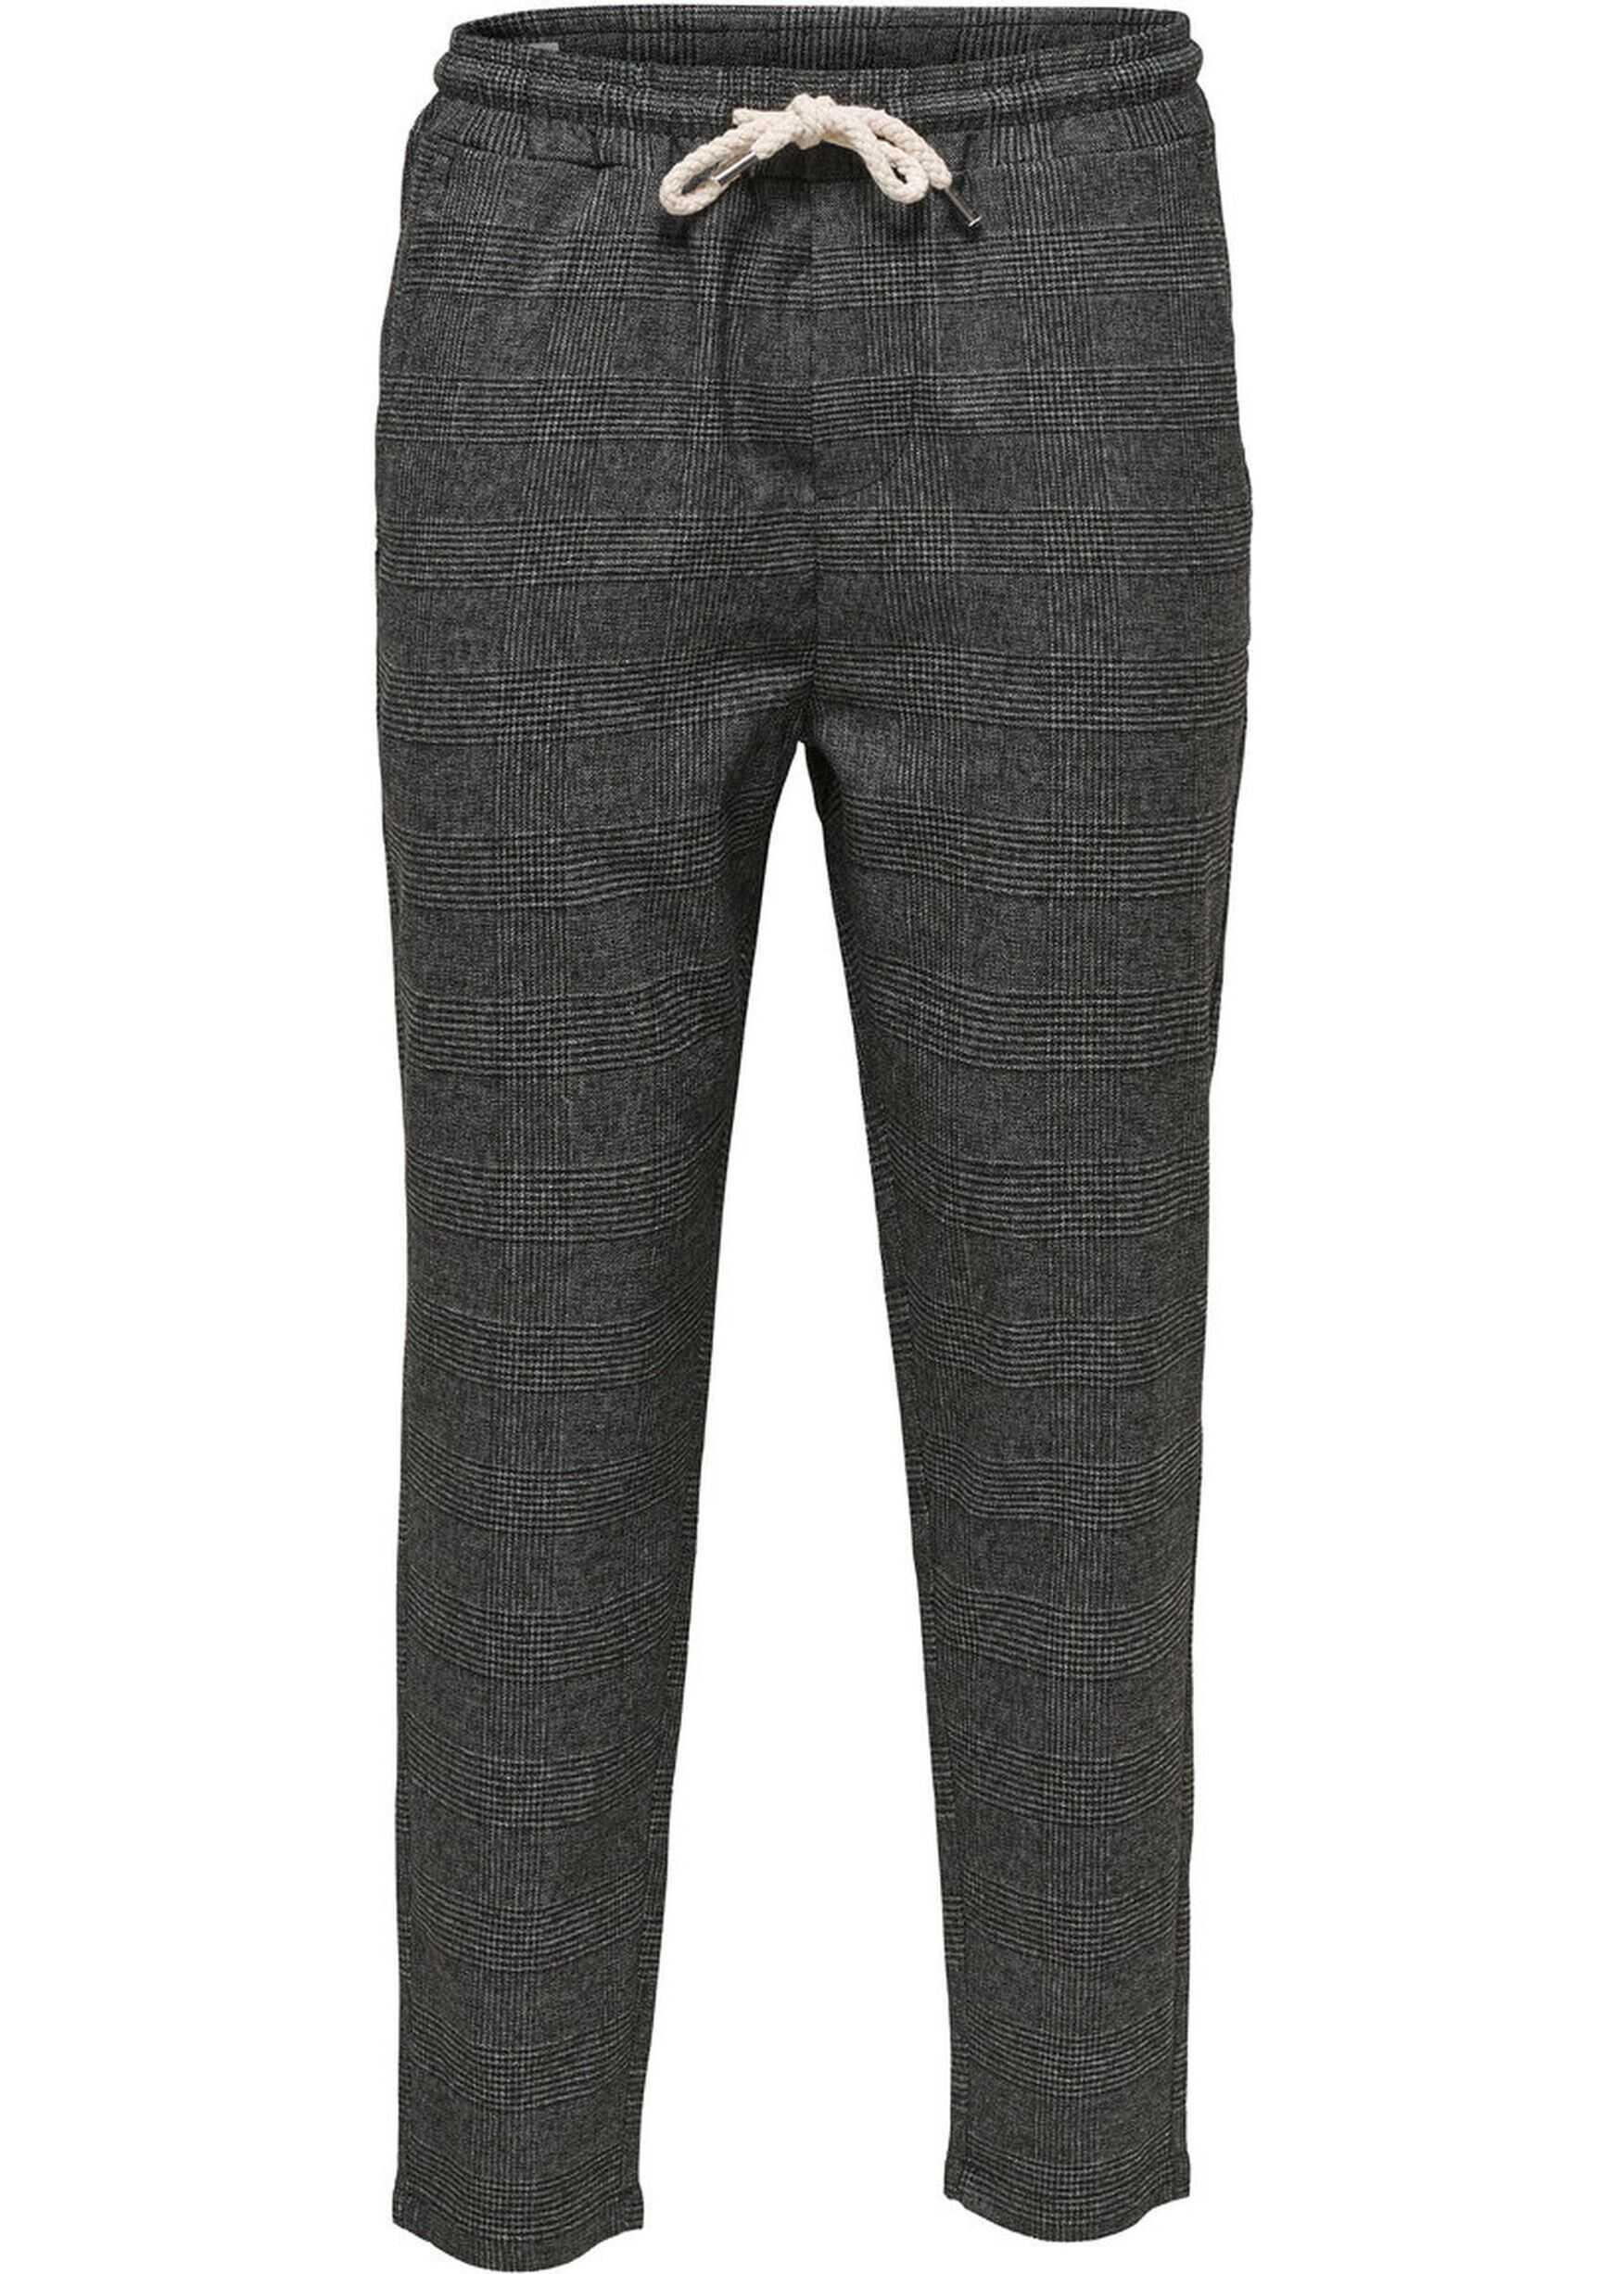 ONLY & SONS Viscose Pants GREY